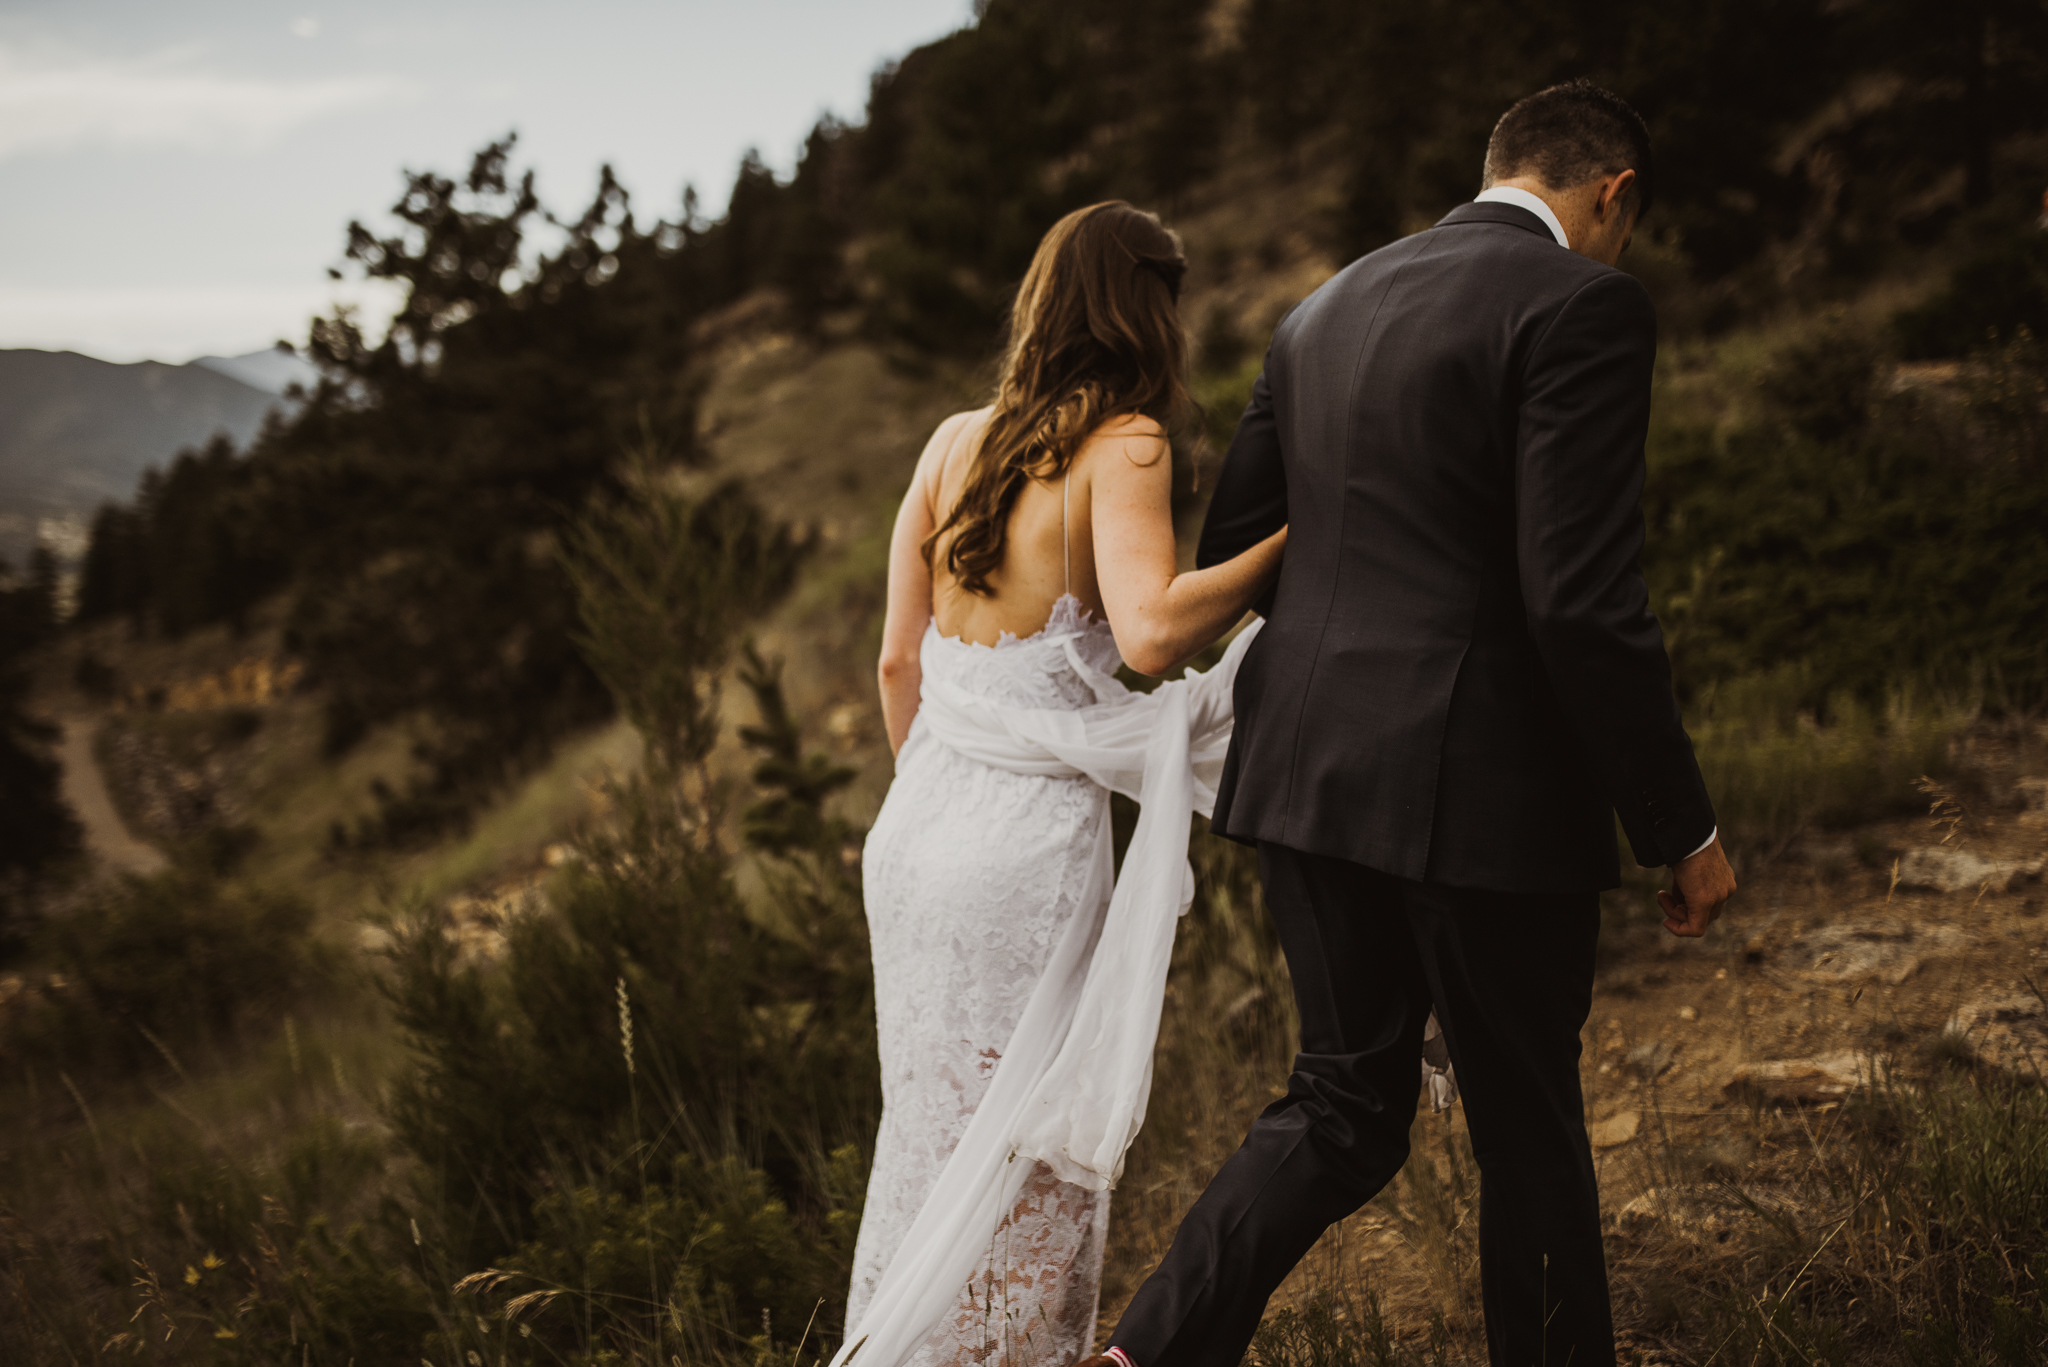 ©Isaiah + Taylor Photography - Estes National Park Adventure Elopement, Colorado Rockies-147.jpg